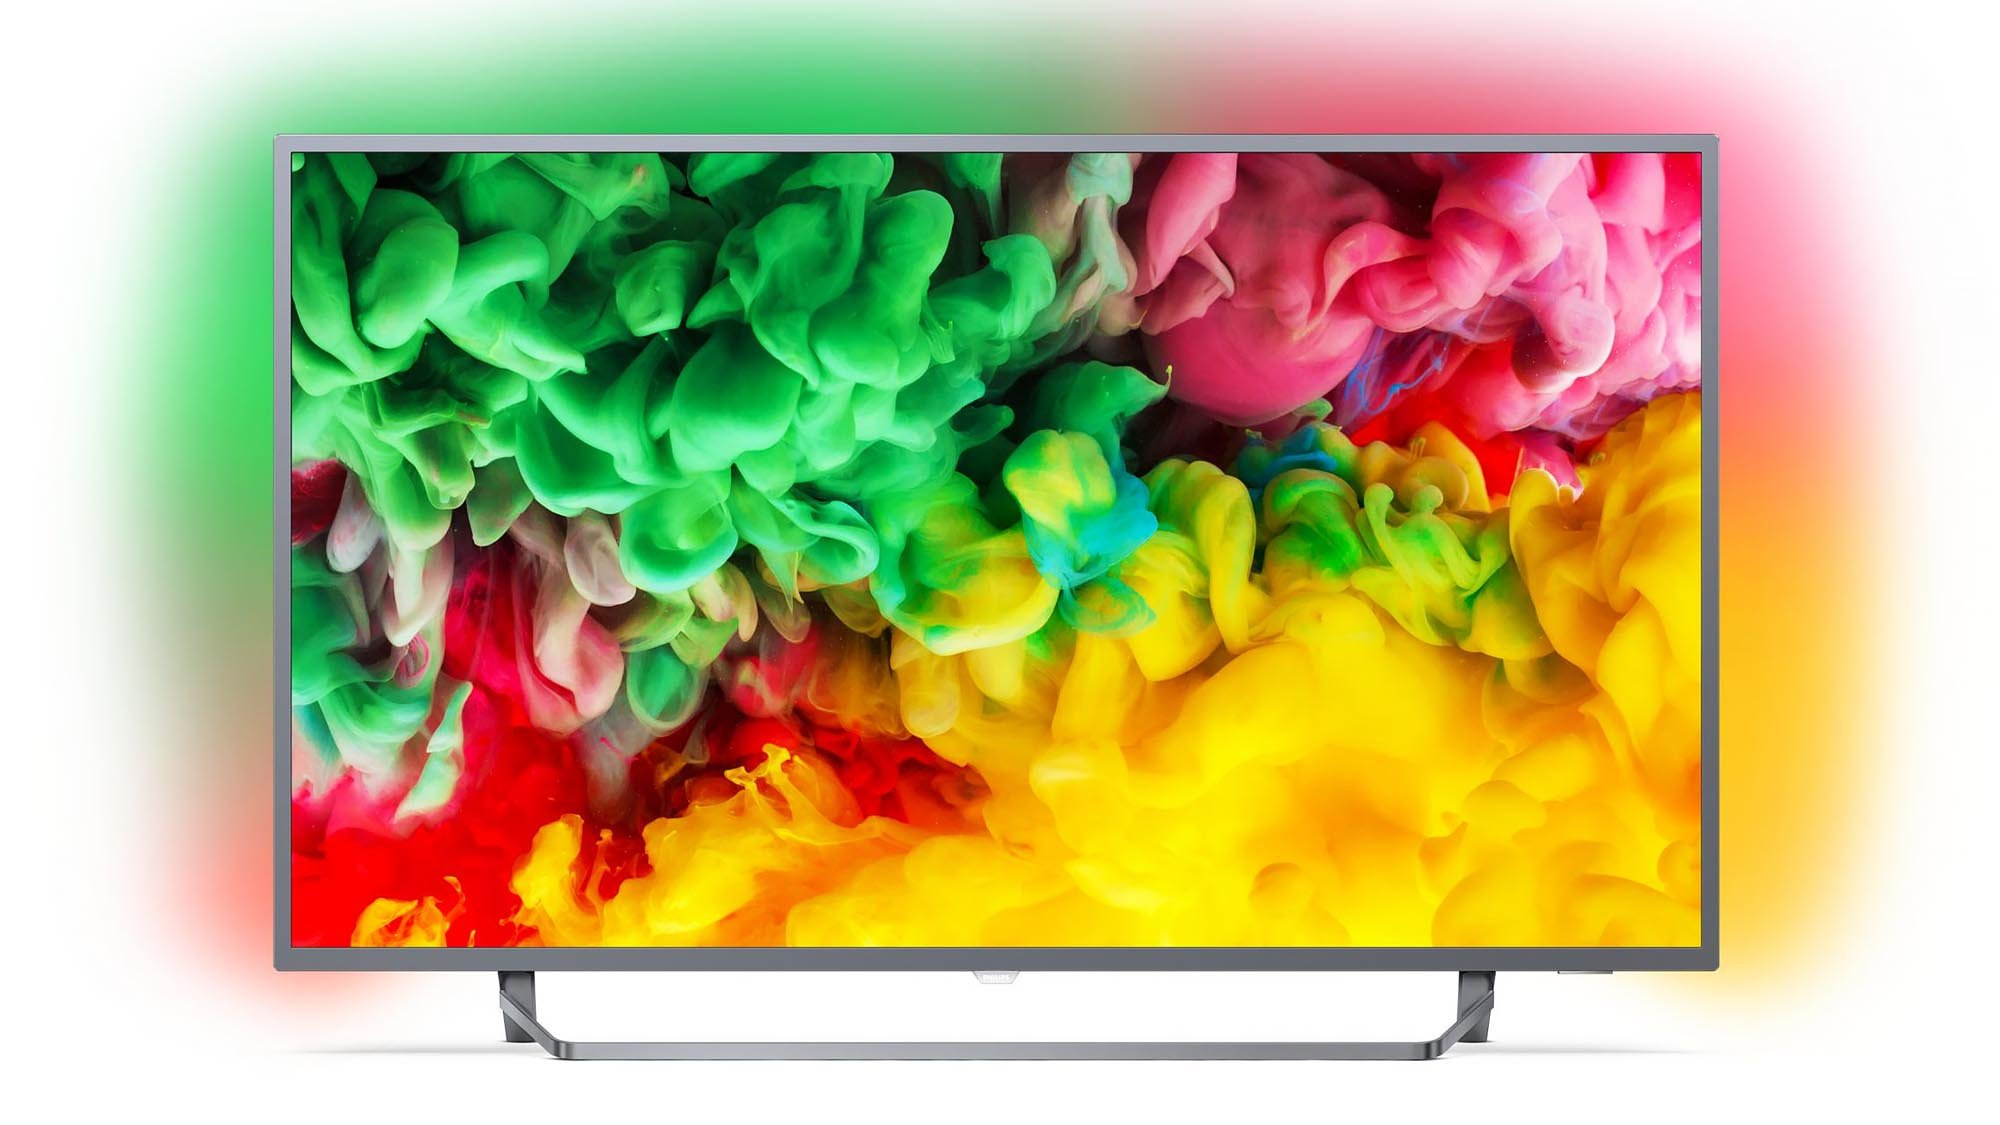 Philips 55PUS6753/12 review: The £700 4K TV you've been waiting for